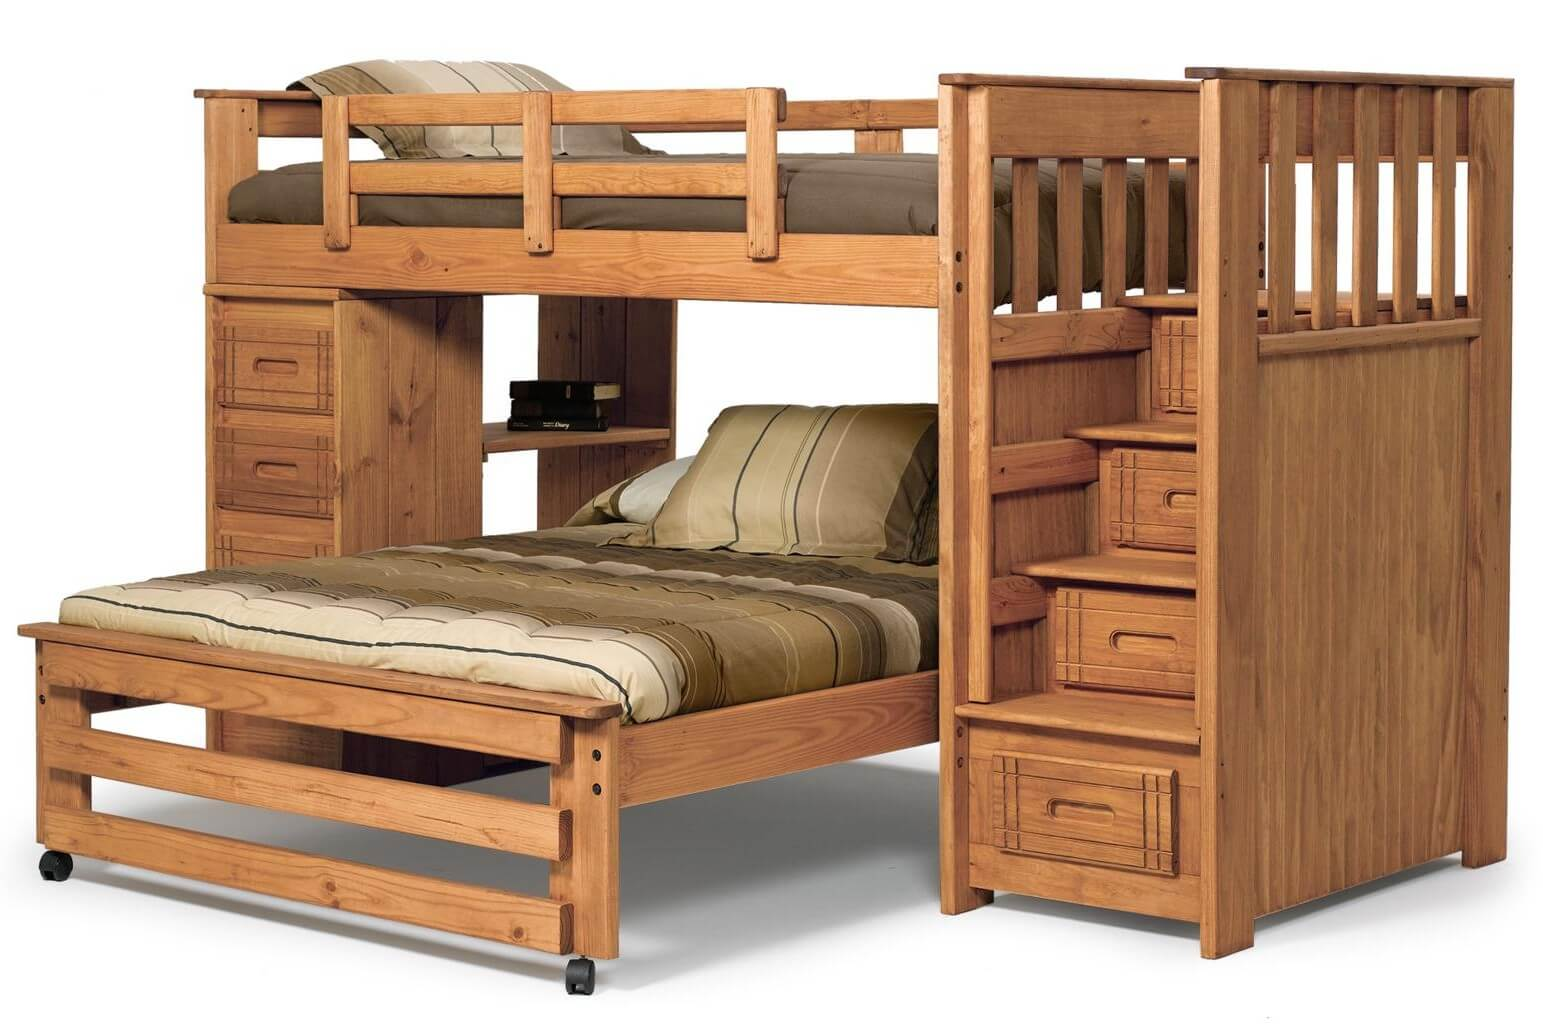 21 top wooden l shaped bunk beds with space saving features for Wooden bunkbeds